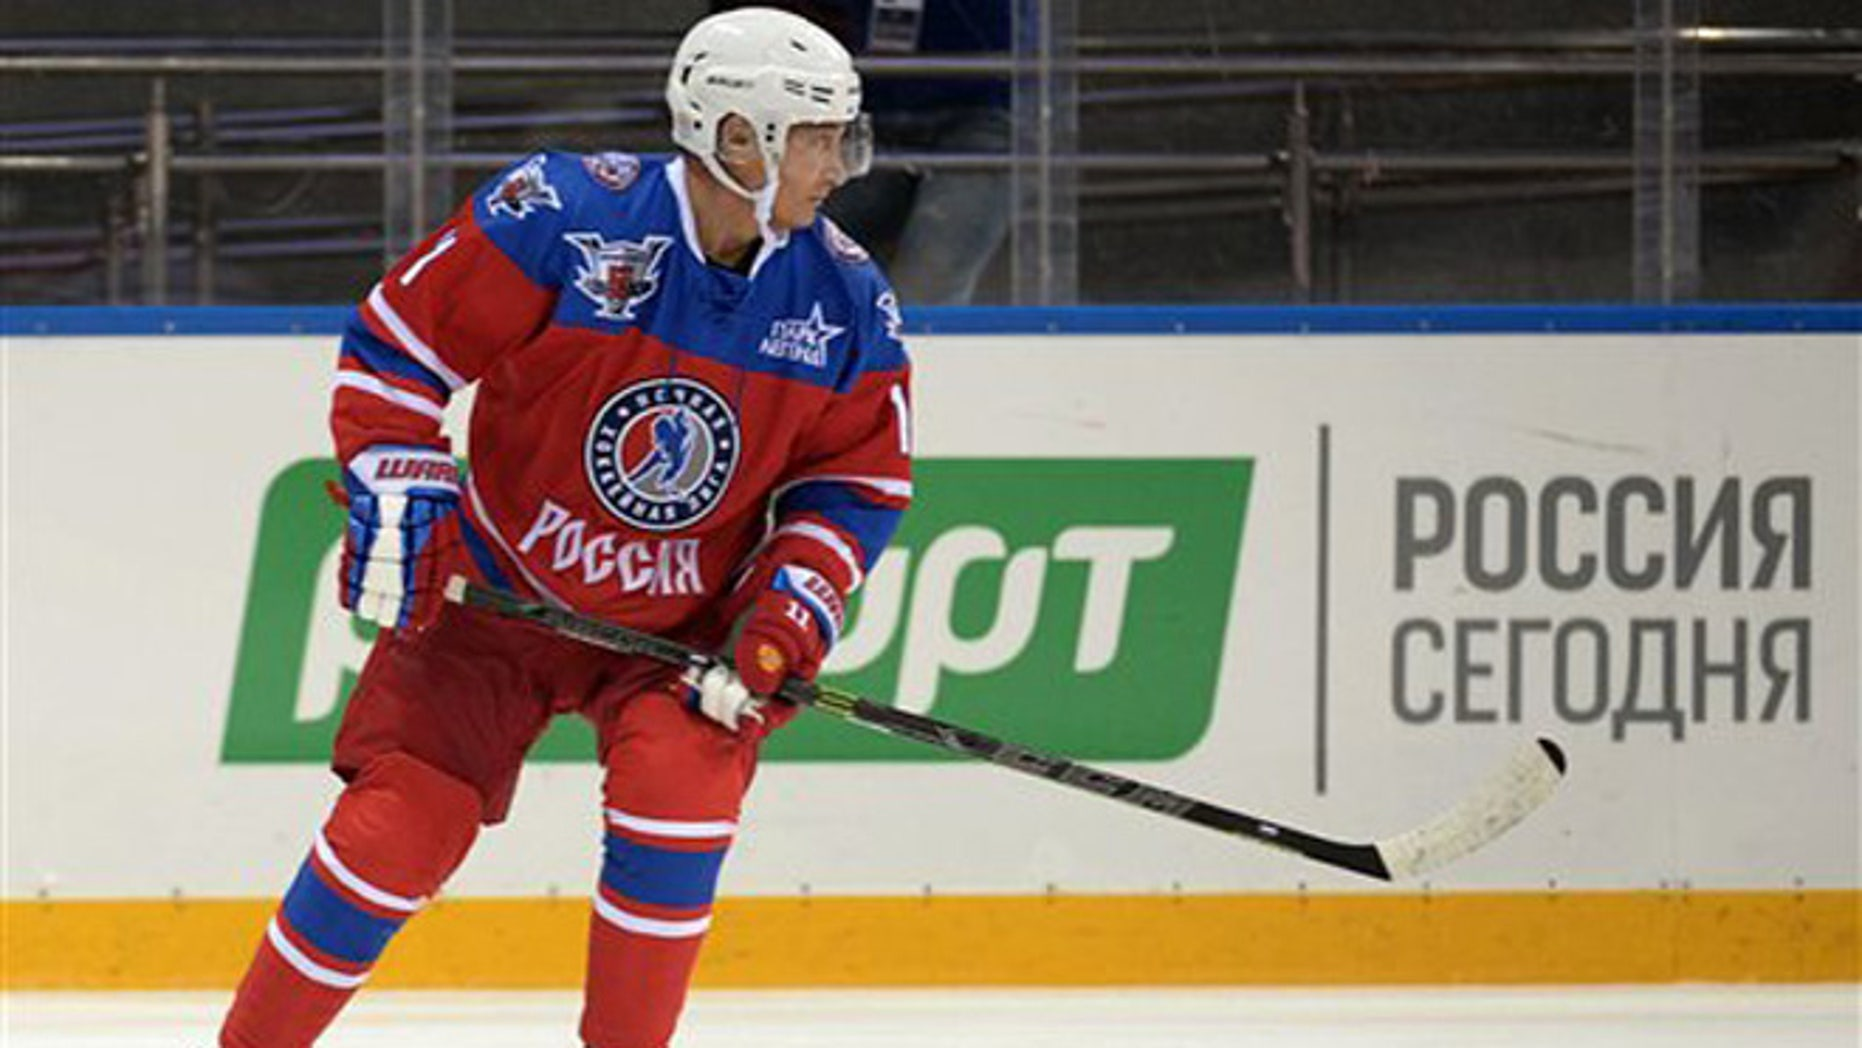 Oct. 7, 2015: Russian President Vladimir Putin takes part in an ice hockey match between former NHL stars and officials at the Shayba Arena in the Black Sea resort of Sochi, Russia. Putin spent his 63rd birthday on the ice, playing hockey with NHL stars against Russian officials and tycoons.